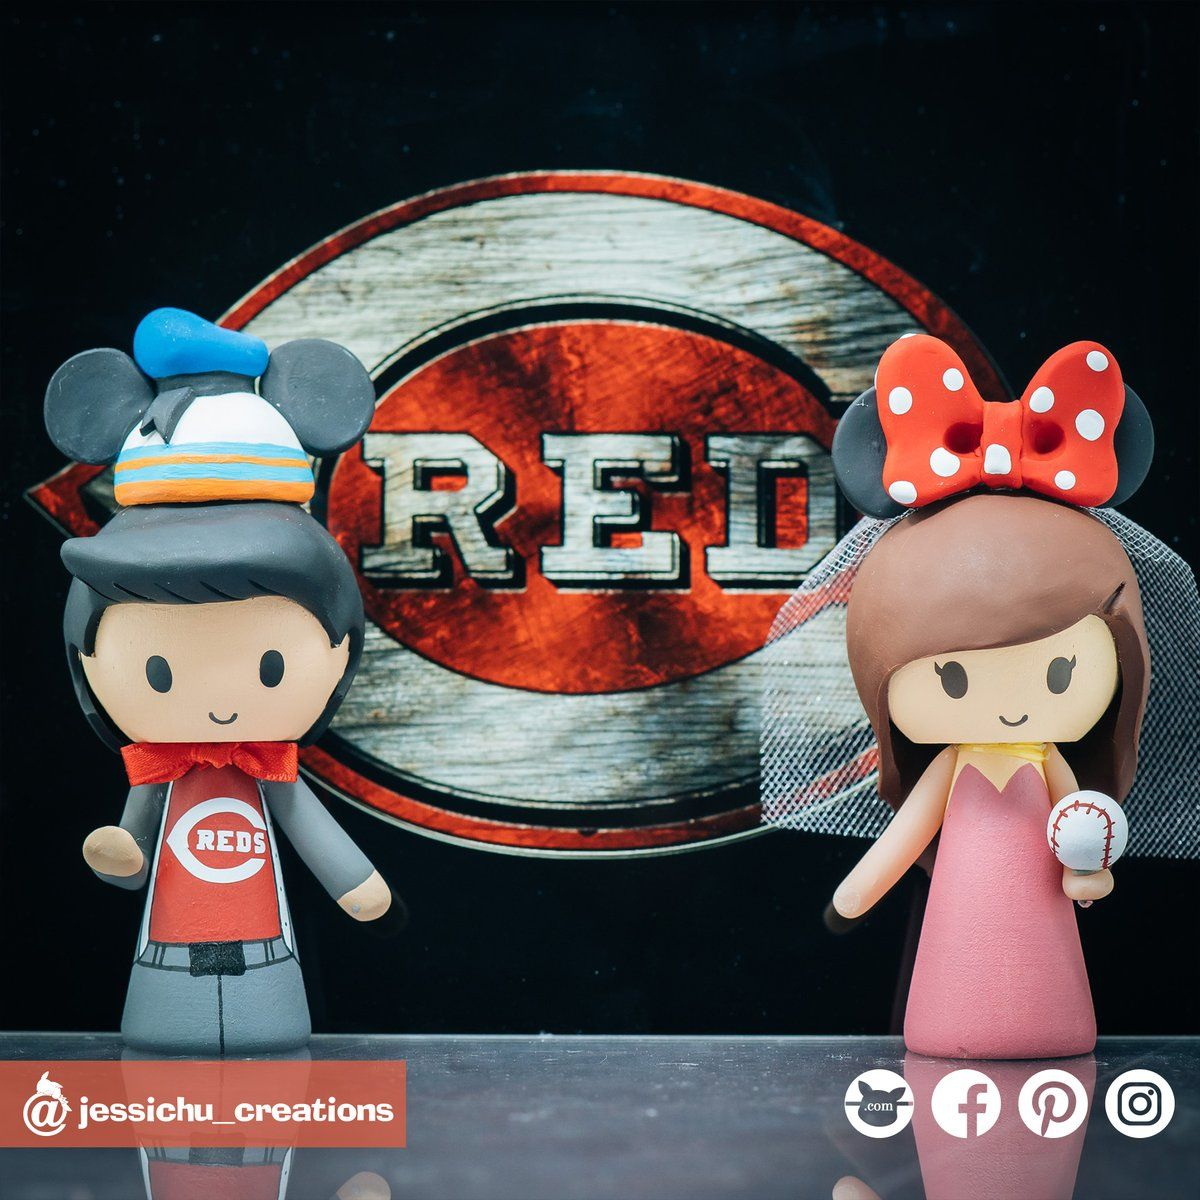 Cincinnati Reds Baseball Bride And Groom With Donald Mickey Hat Minnie Ears Custom Made Figurine Wedding Cake Topper In 2020 Wedding Cake Topper Figurines Handmade Wedding Cake Toppers Wedding Cake Toppers